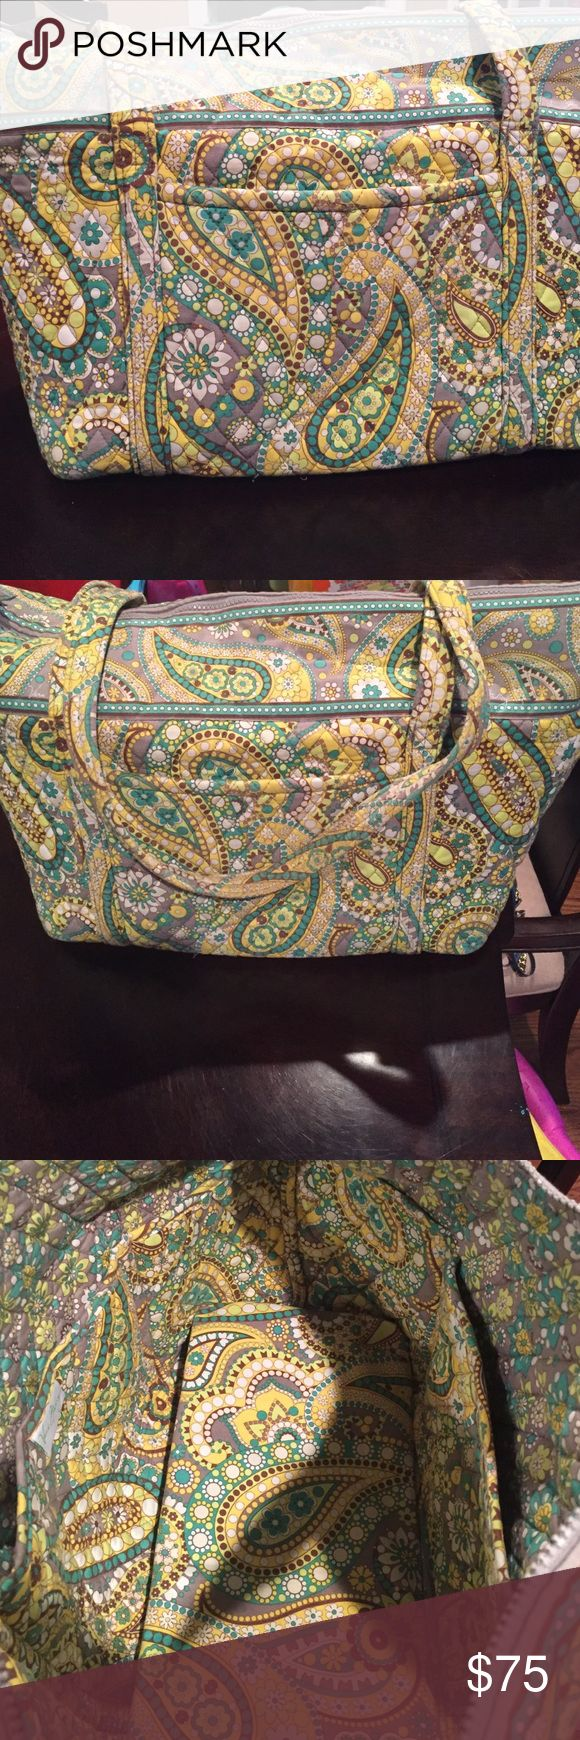 Vera Bradley overnight bag Vera Bradley overnight bag. Has front pocket. Inside has 6 pockets great for storage. Very good condition. Vera Bradley Bags Travel Bags